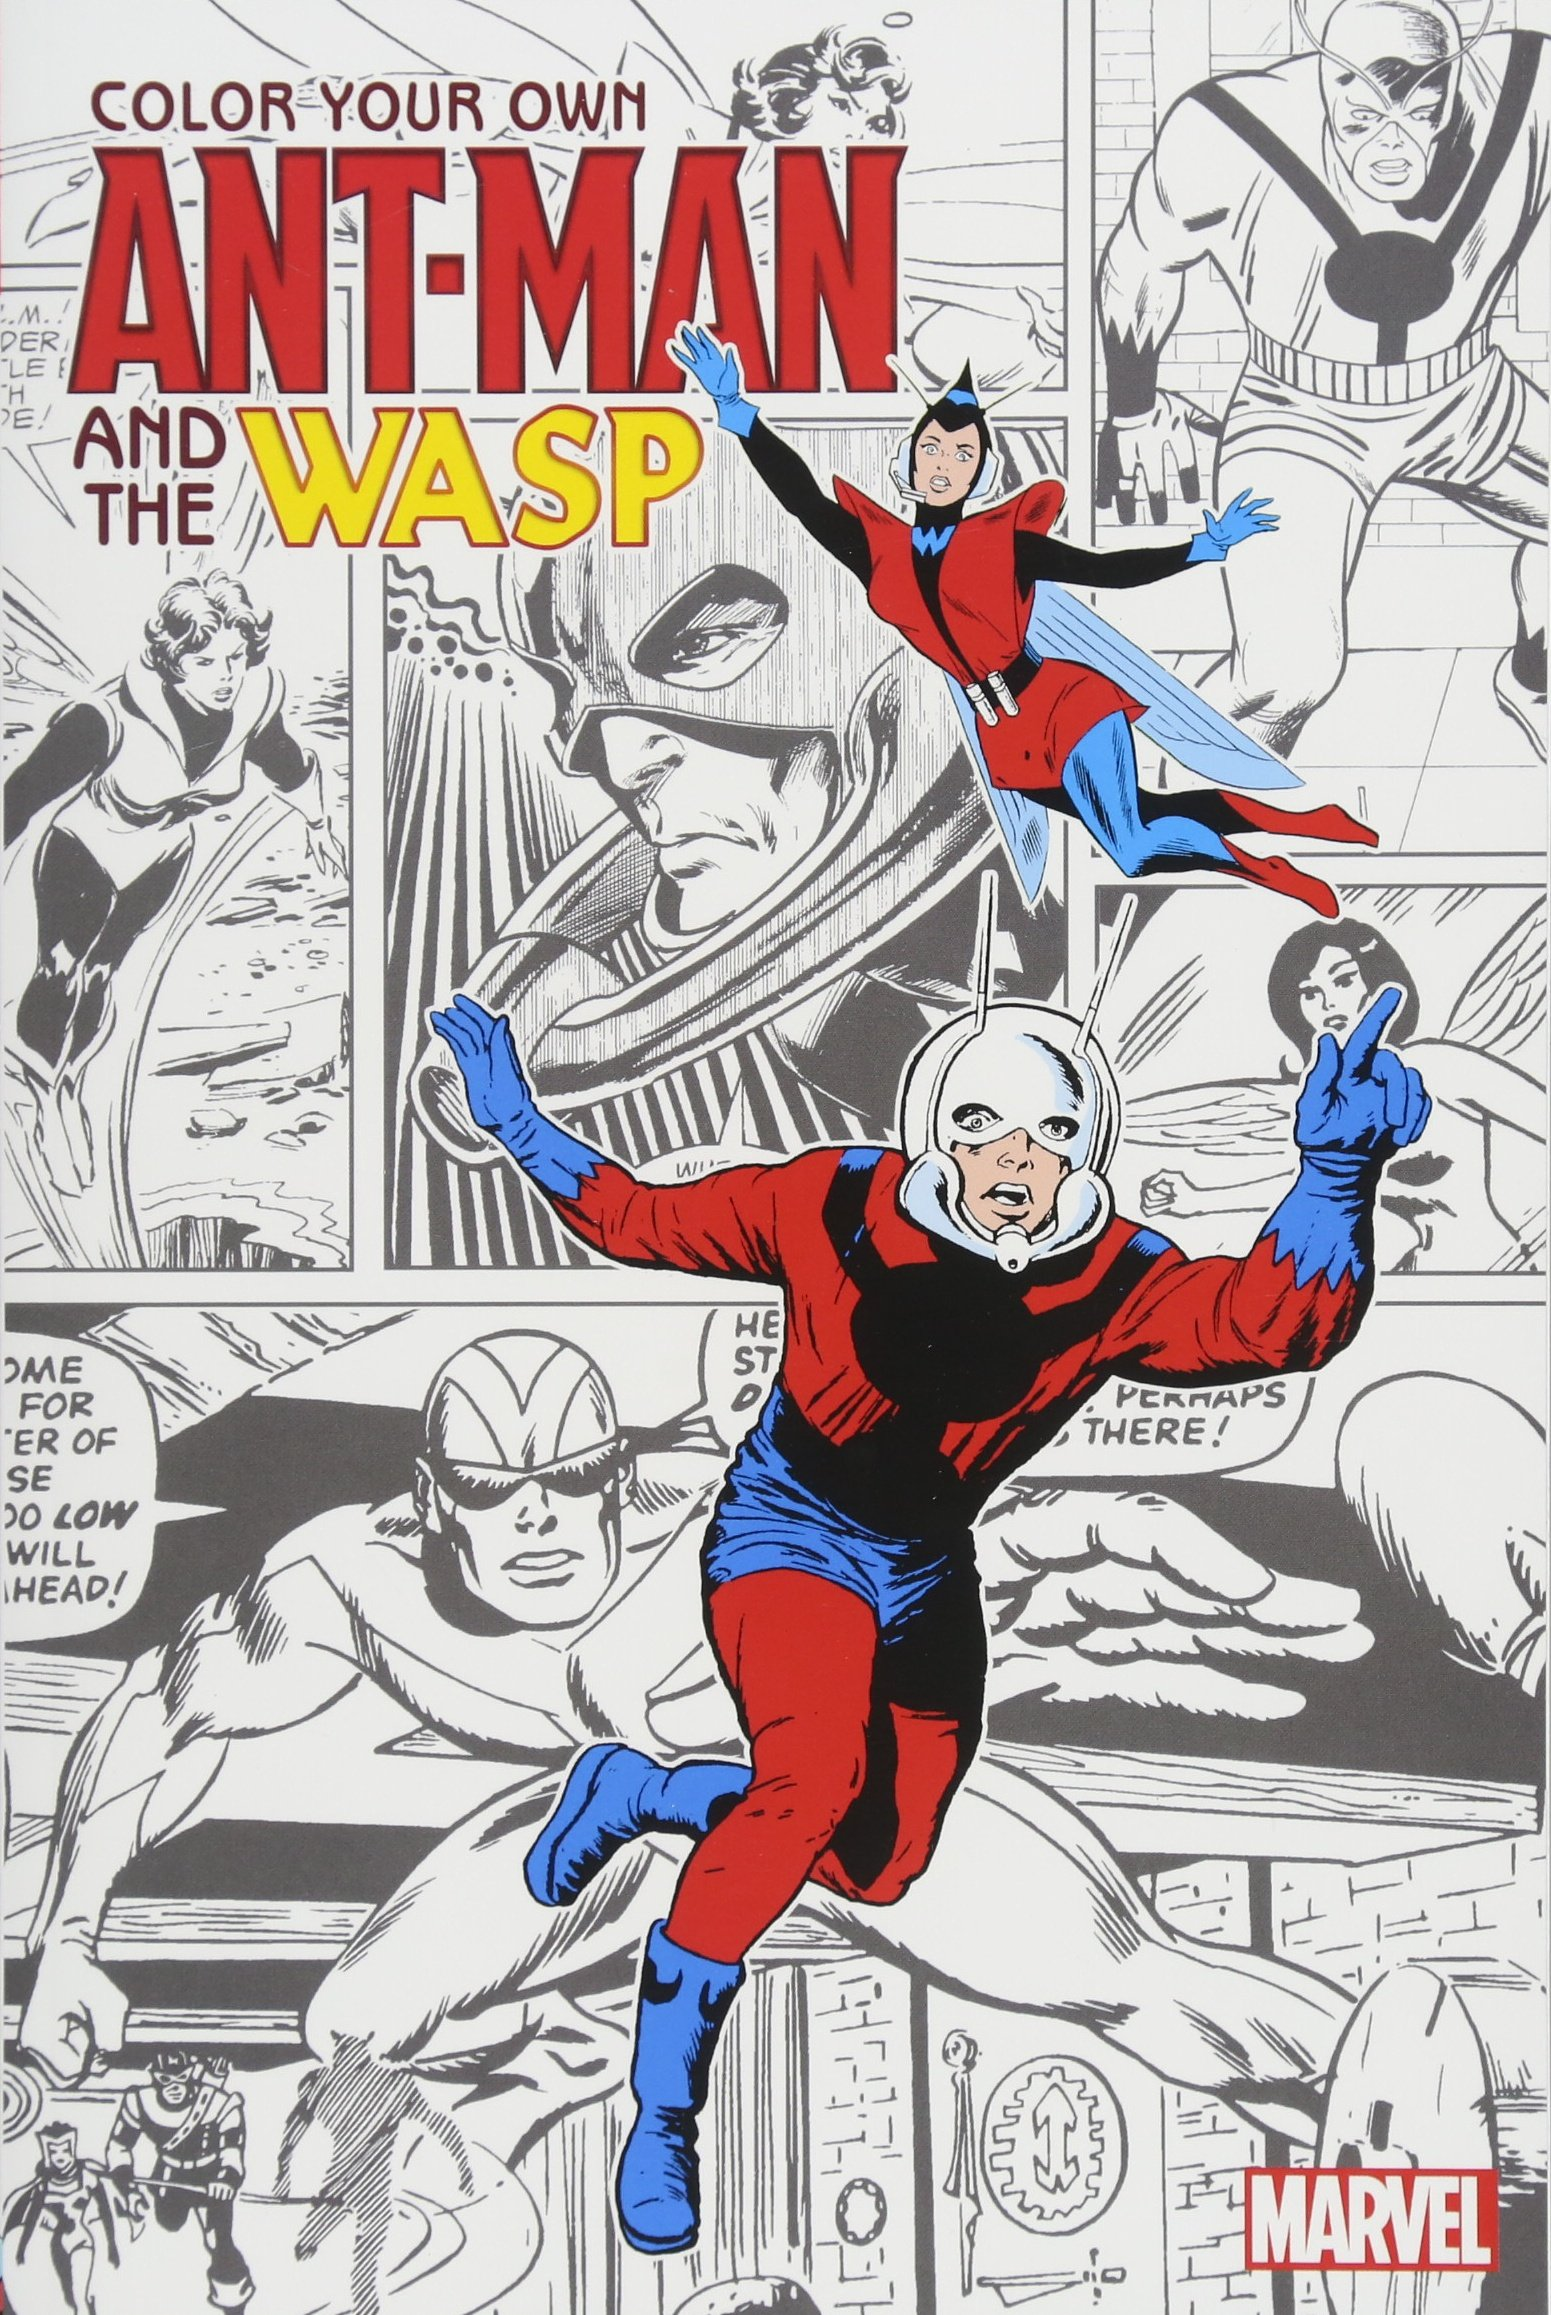 Amazon Com Color Your Own Ant Man And The Wasp 9781302908904